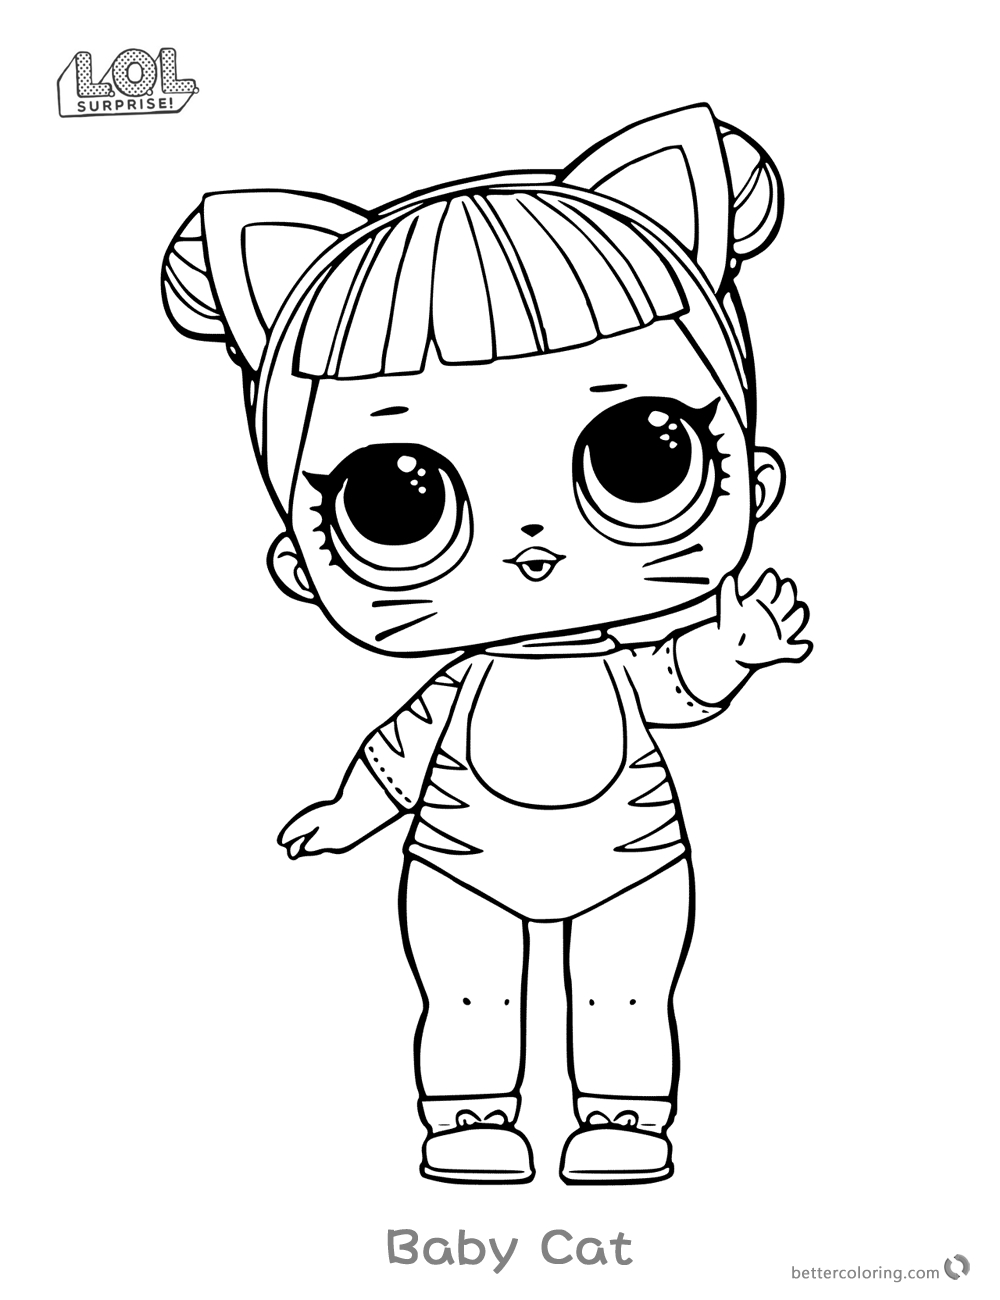 1000x1300 new lol surprise doll free coloring pages collection stunning page